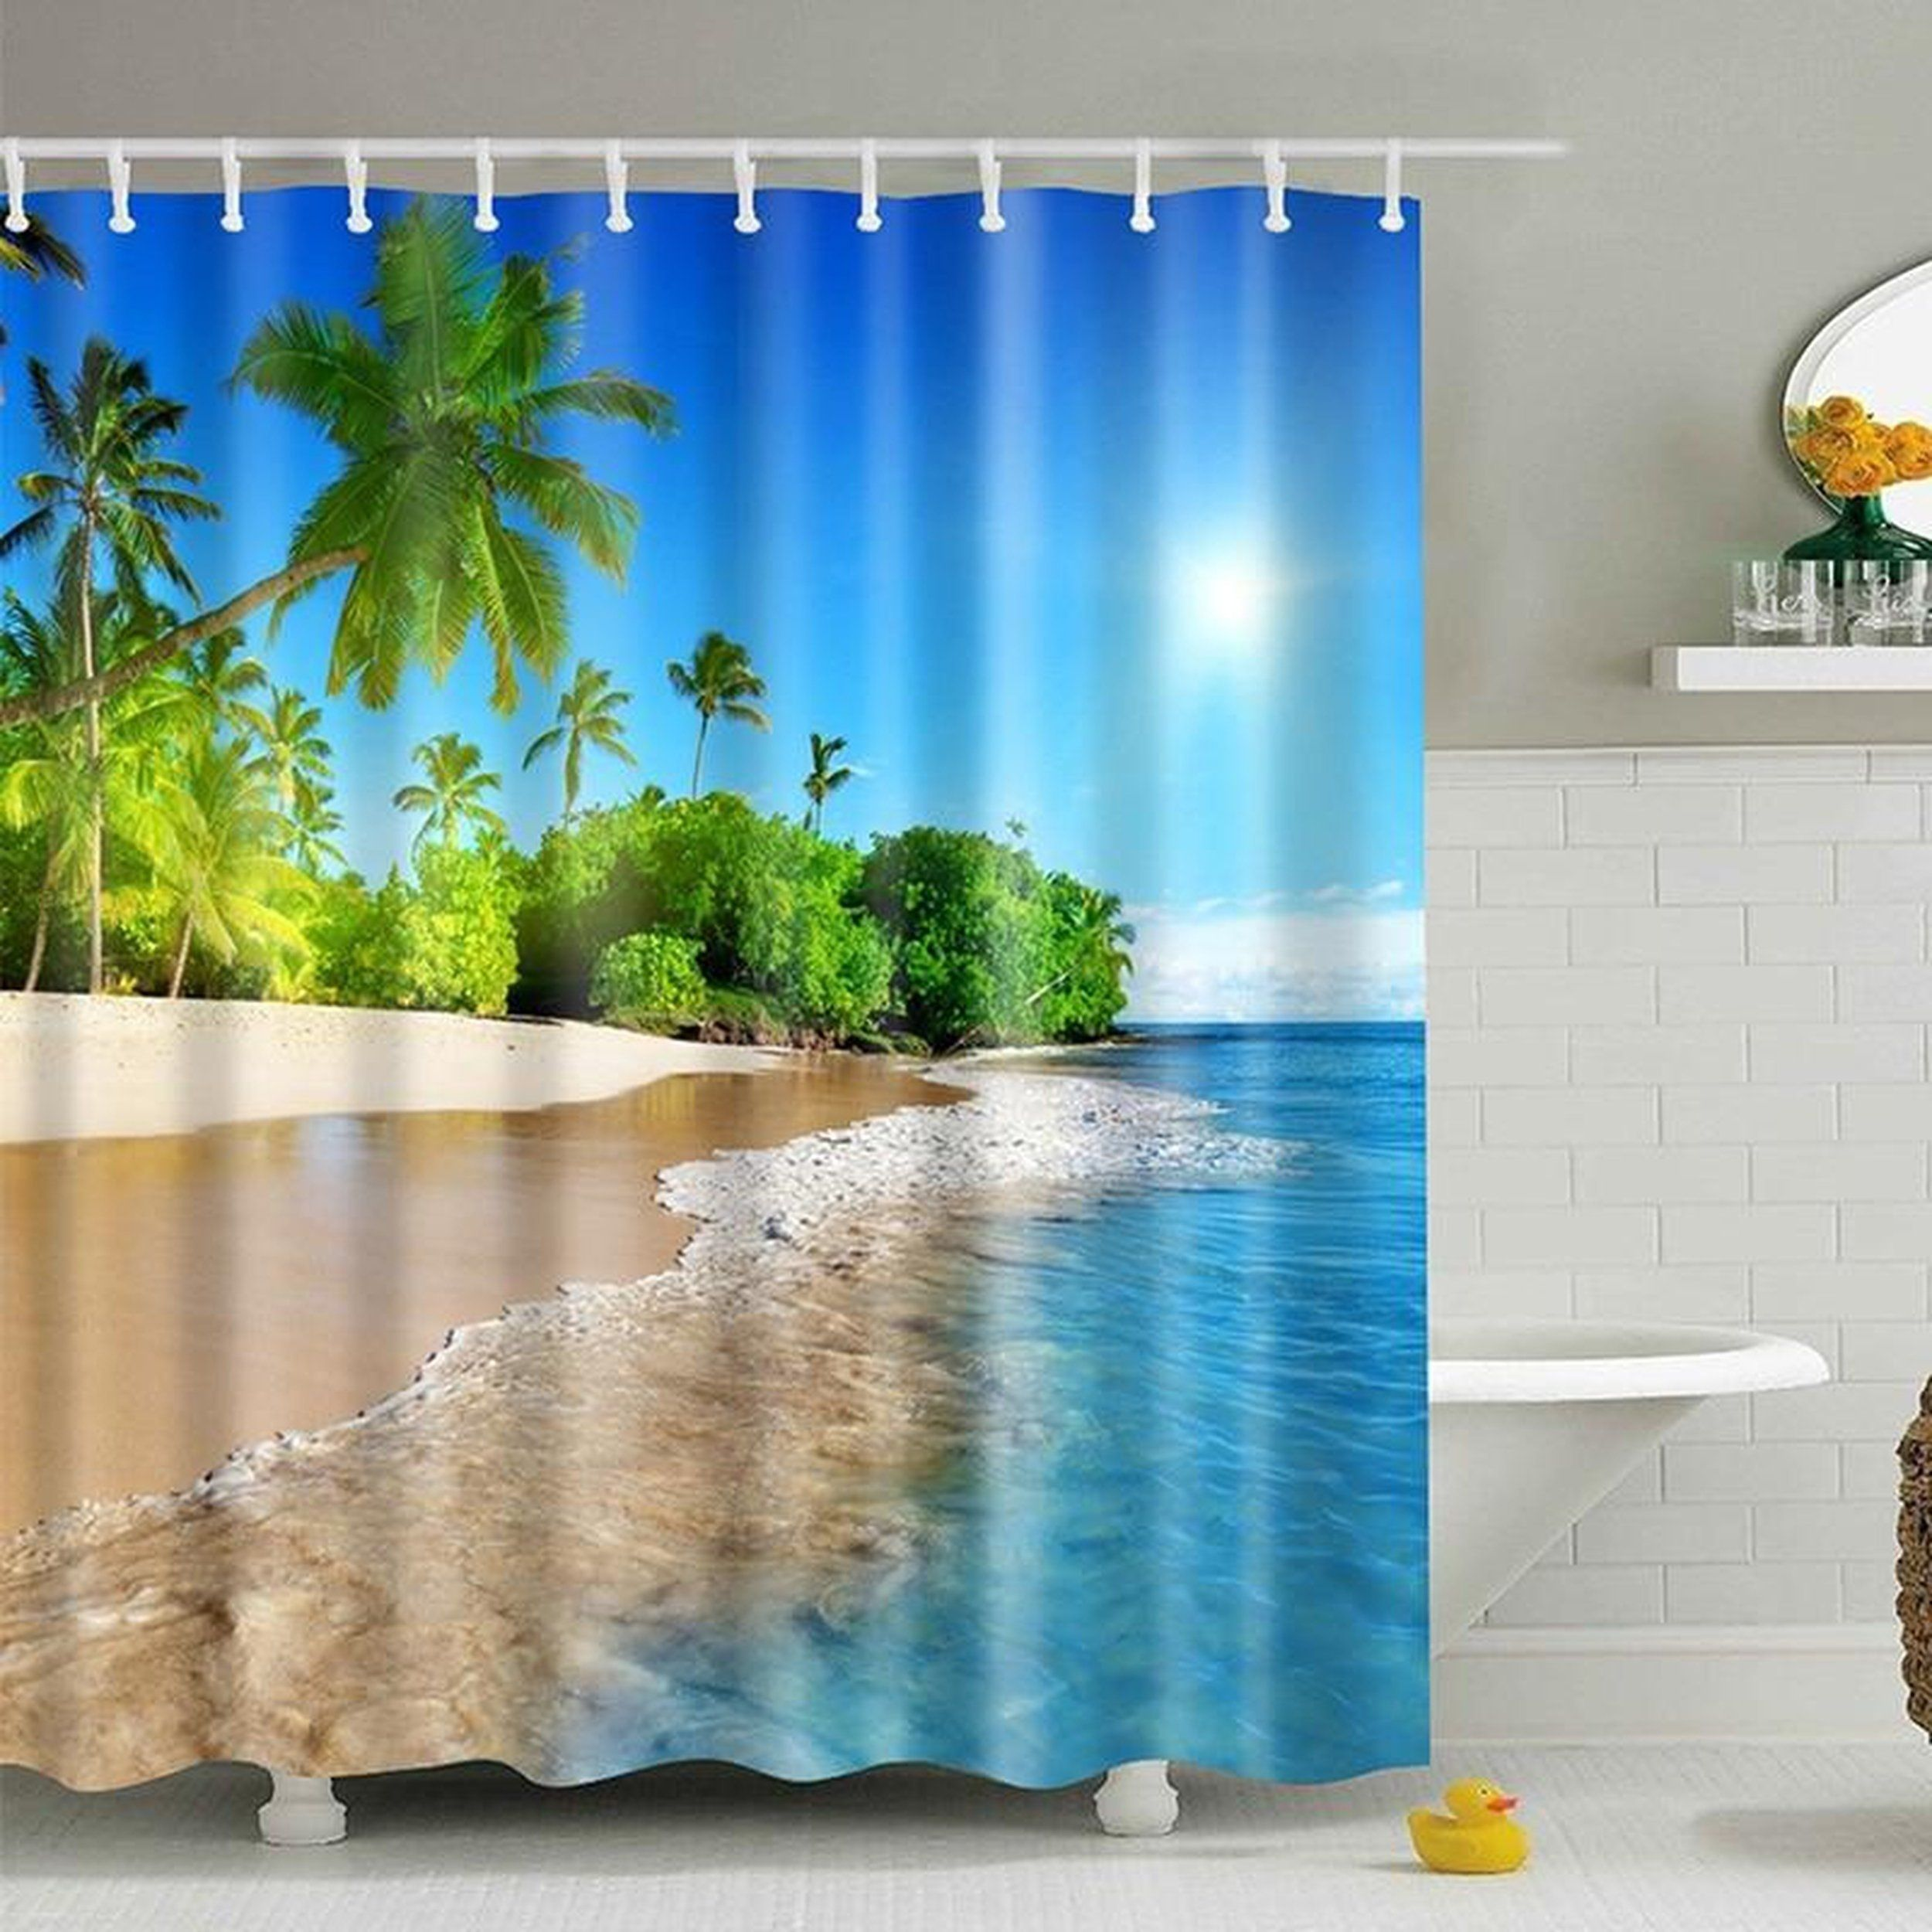 Waterproof Shower Curtain Landscape Shower Curtains 180 180 Cm